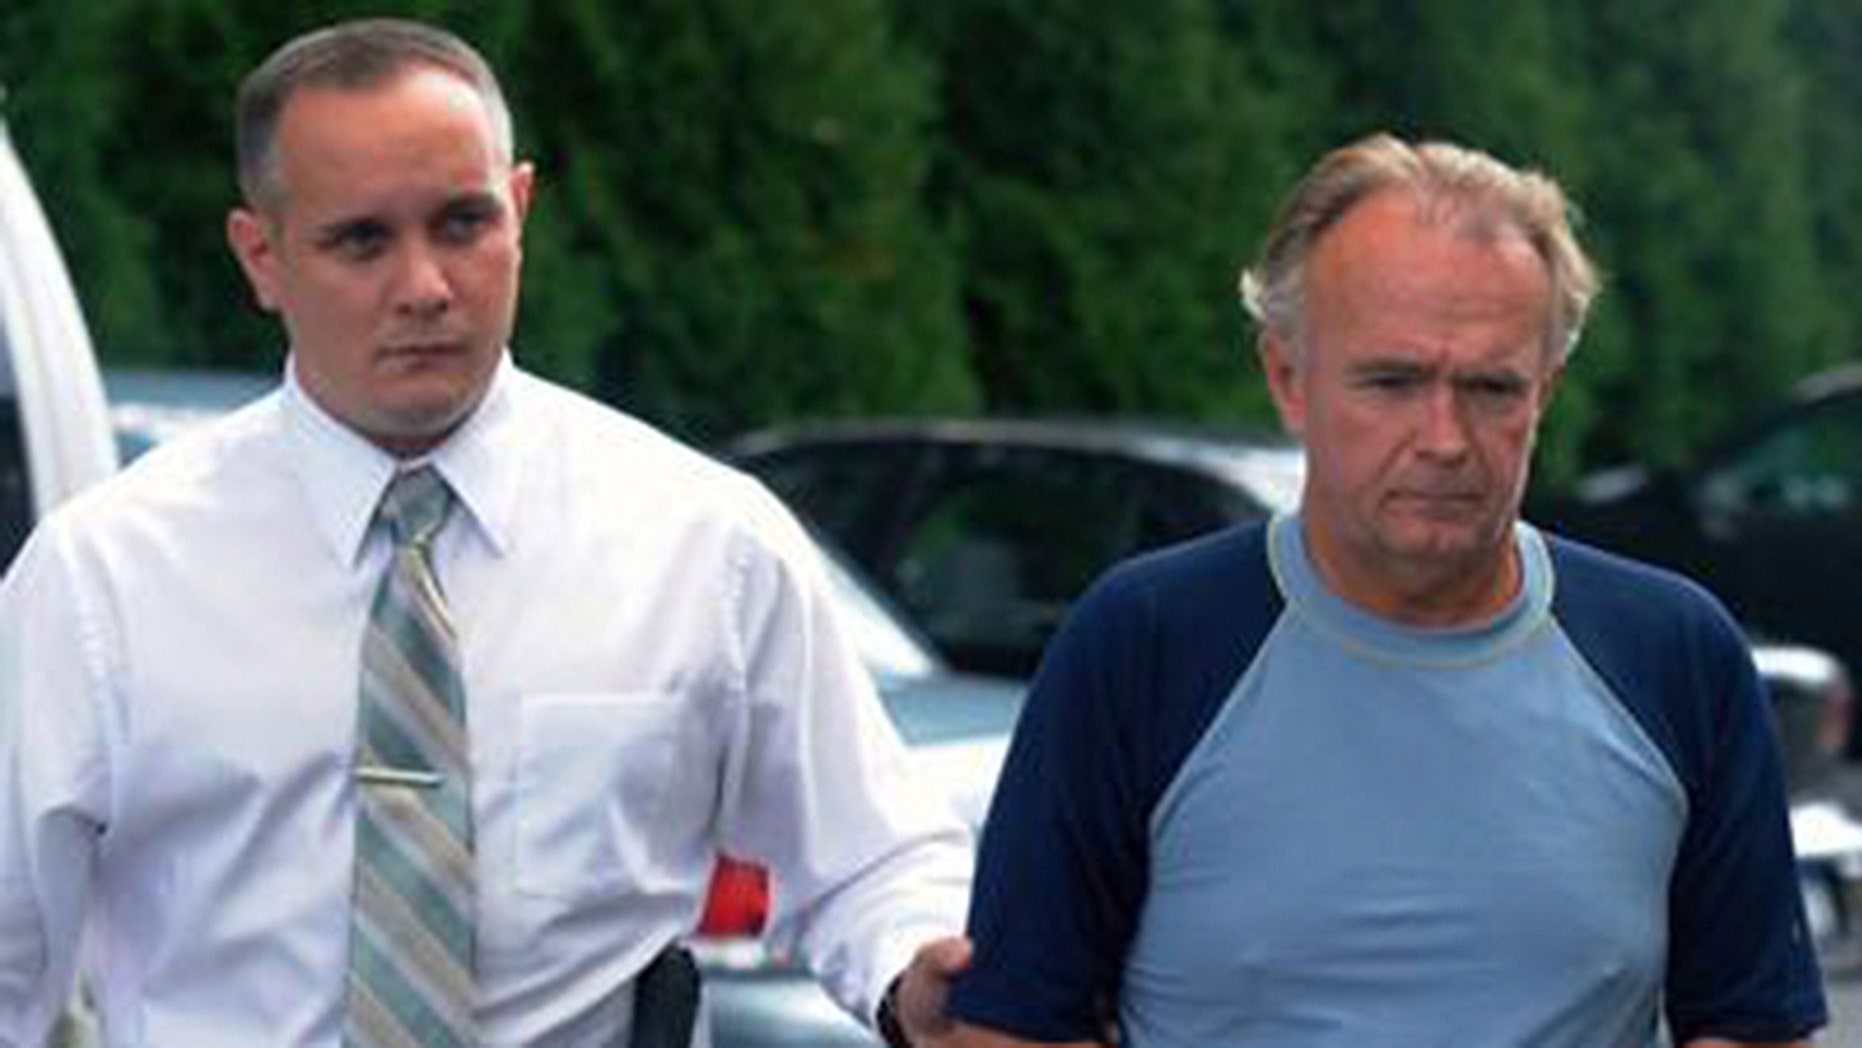 The Rev. Arthur Burton Schirmer, 62, right, is led into district court by Pennsylvania State Trooper Bill Skotleski in Tannersville, Pa., in this Sept. 13, 2010 file photo. The retired Pennsylvania pastor was ordered Tuesday, Sept. 28, 2010 to stand trial on charges he killed his wife and staged a car accident to cover it up, a case that has investigators re-examining his first wife's death. (AP Photo/Pocono Record, David Kidwell)